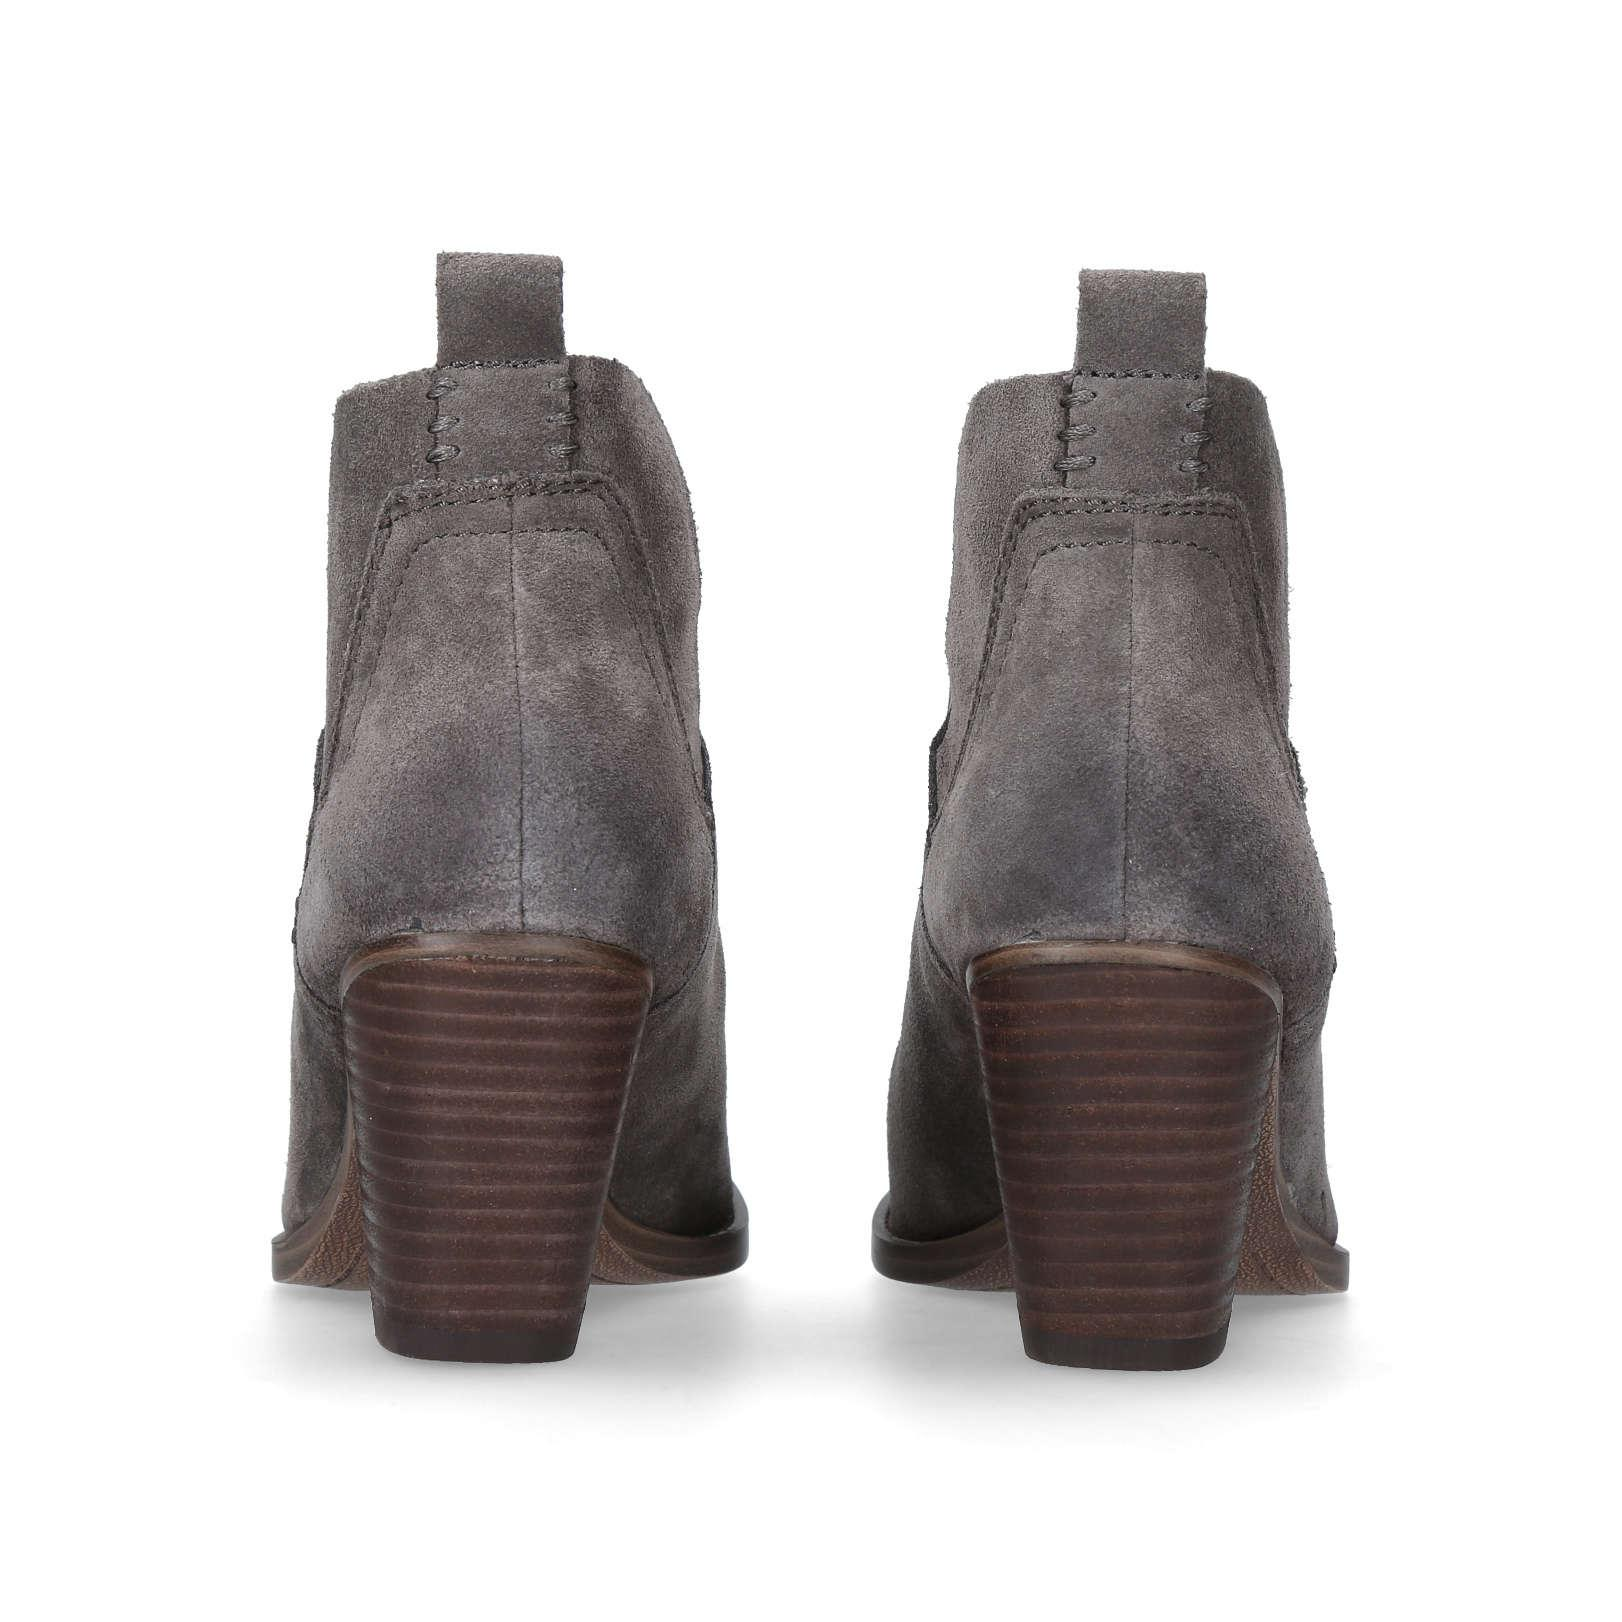 Vince Camuto Suede Bessey Ankle Boots in Grey (Grey)